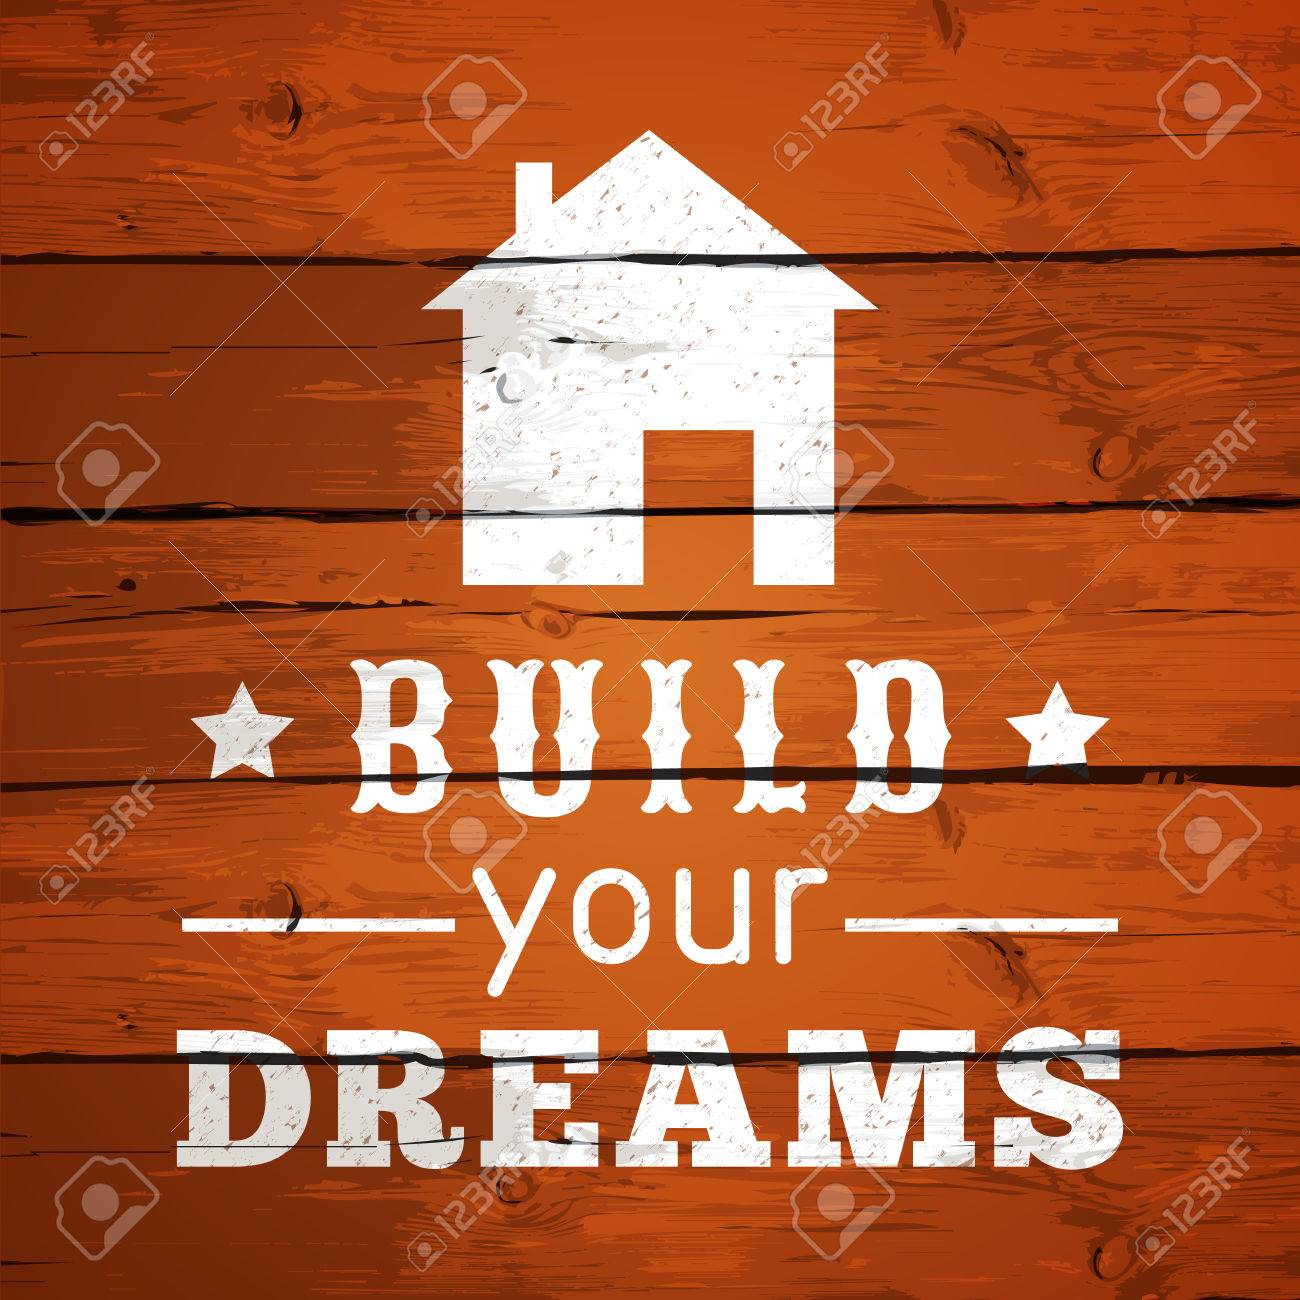 Poster design typography - Typographic Poster Design Build Your Dreams Vector Illustration For Home Design Wood Texture